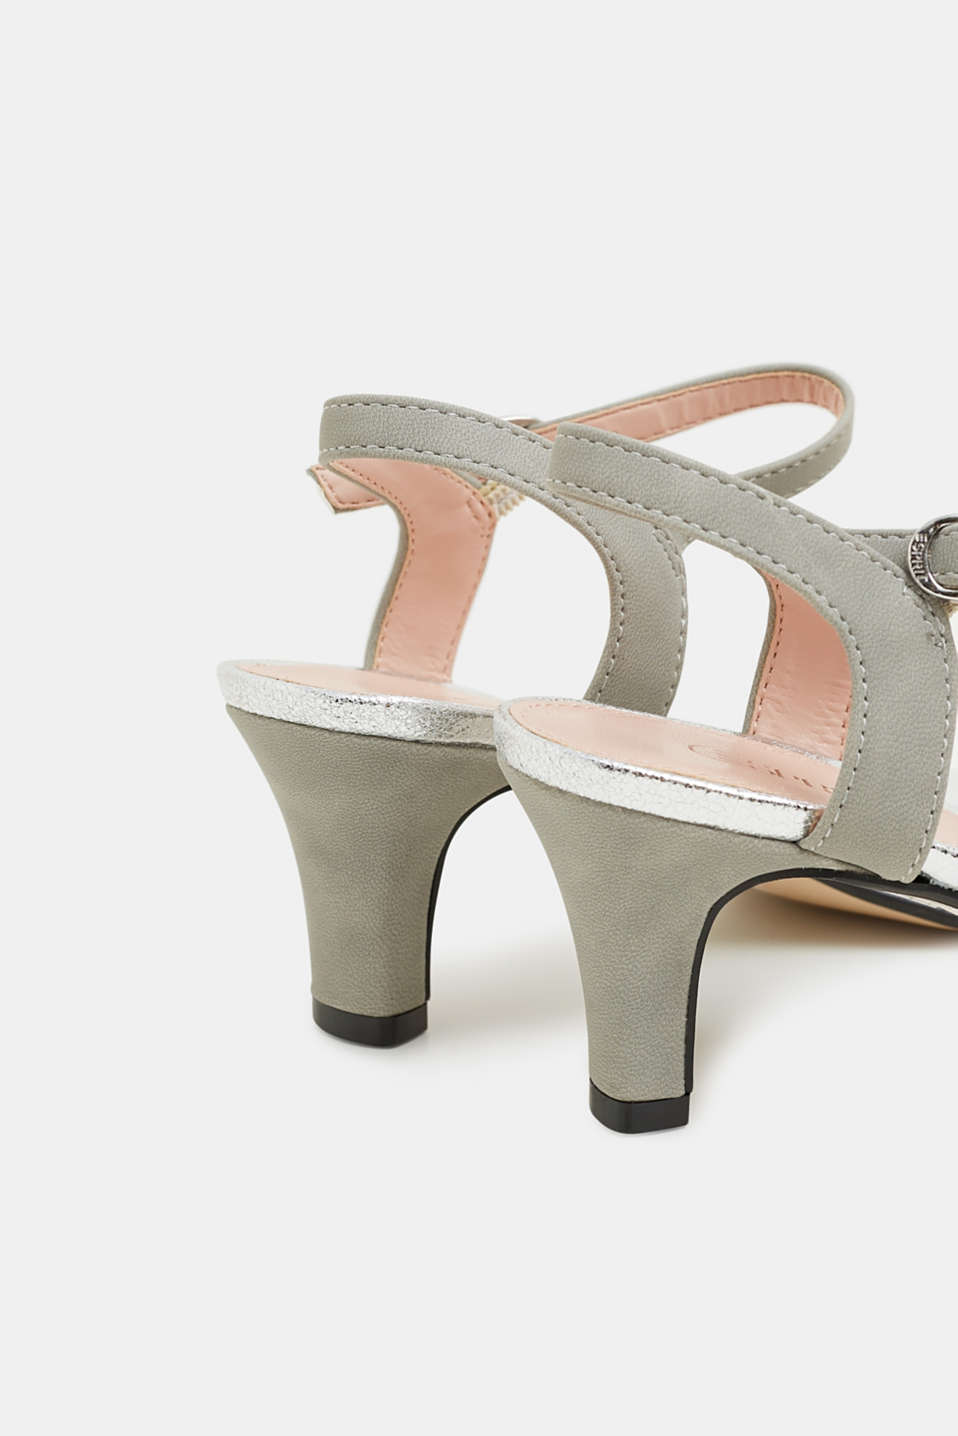 Faux leather sandals with metallic accents, SILVER, detail image number 5